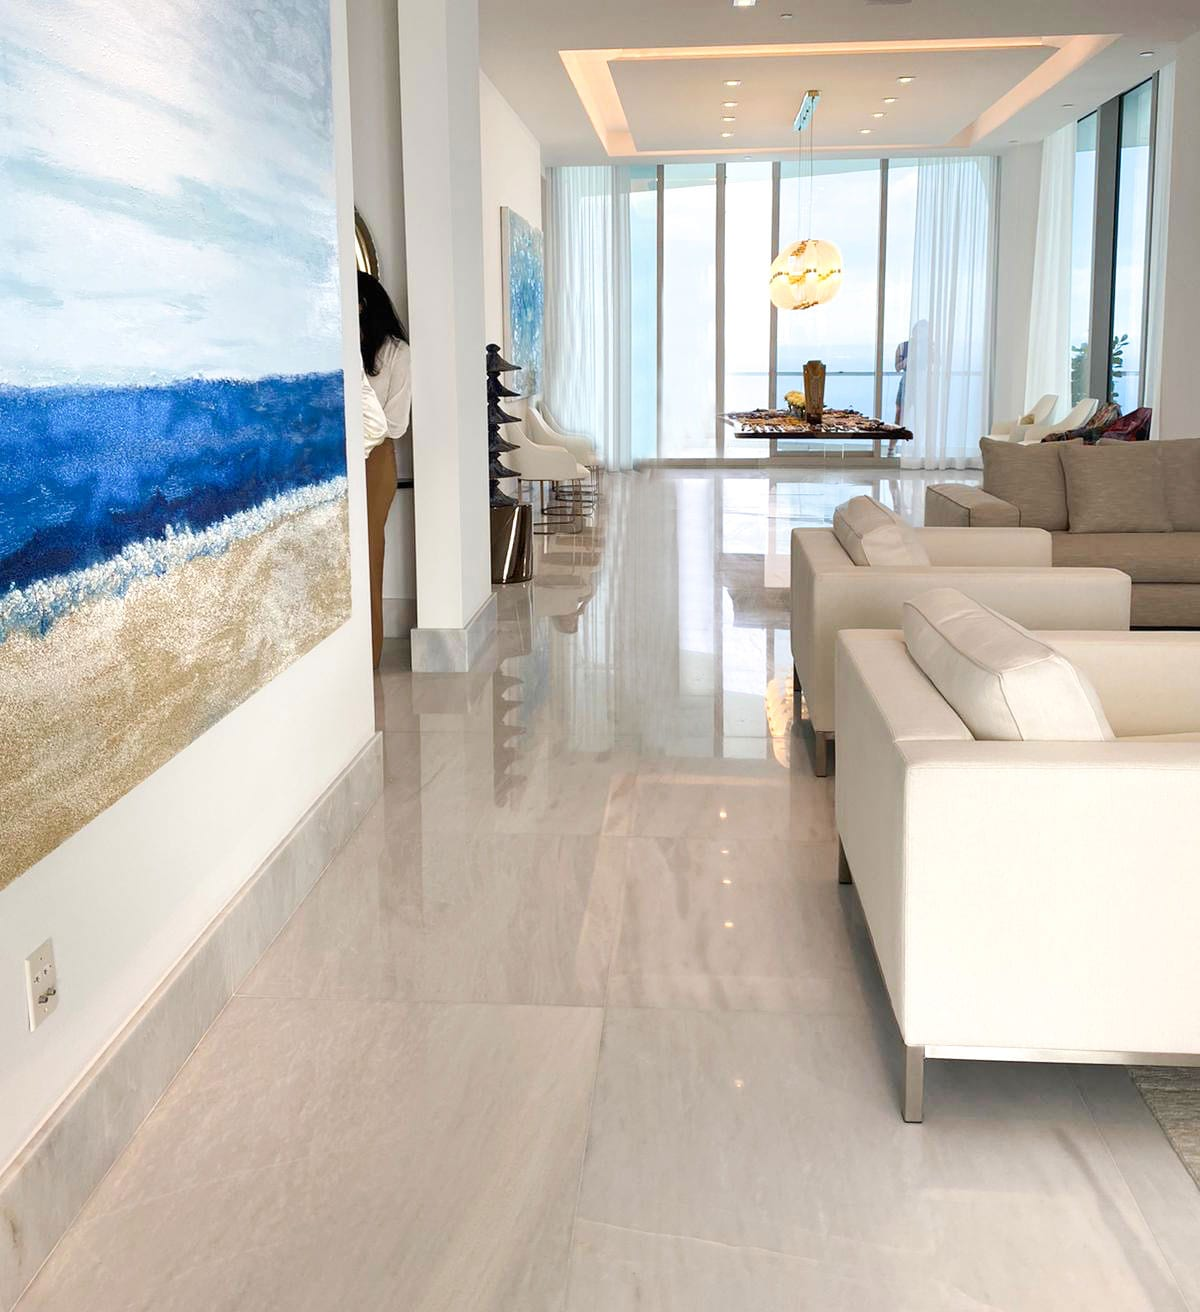 Stoneline-Group-Tile-Collection-Marble-Tiles-Dione-White-livingroom-floor-performance-picture-2